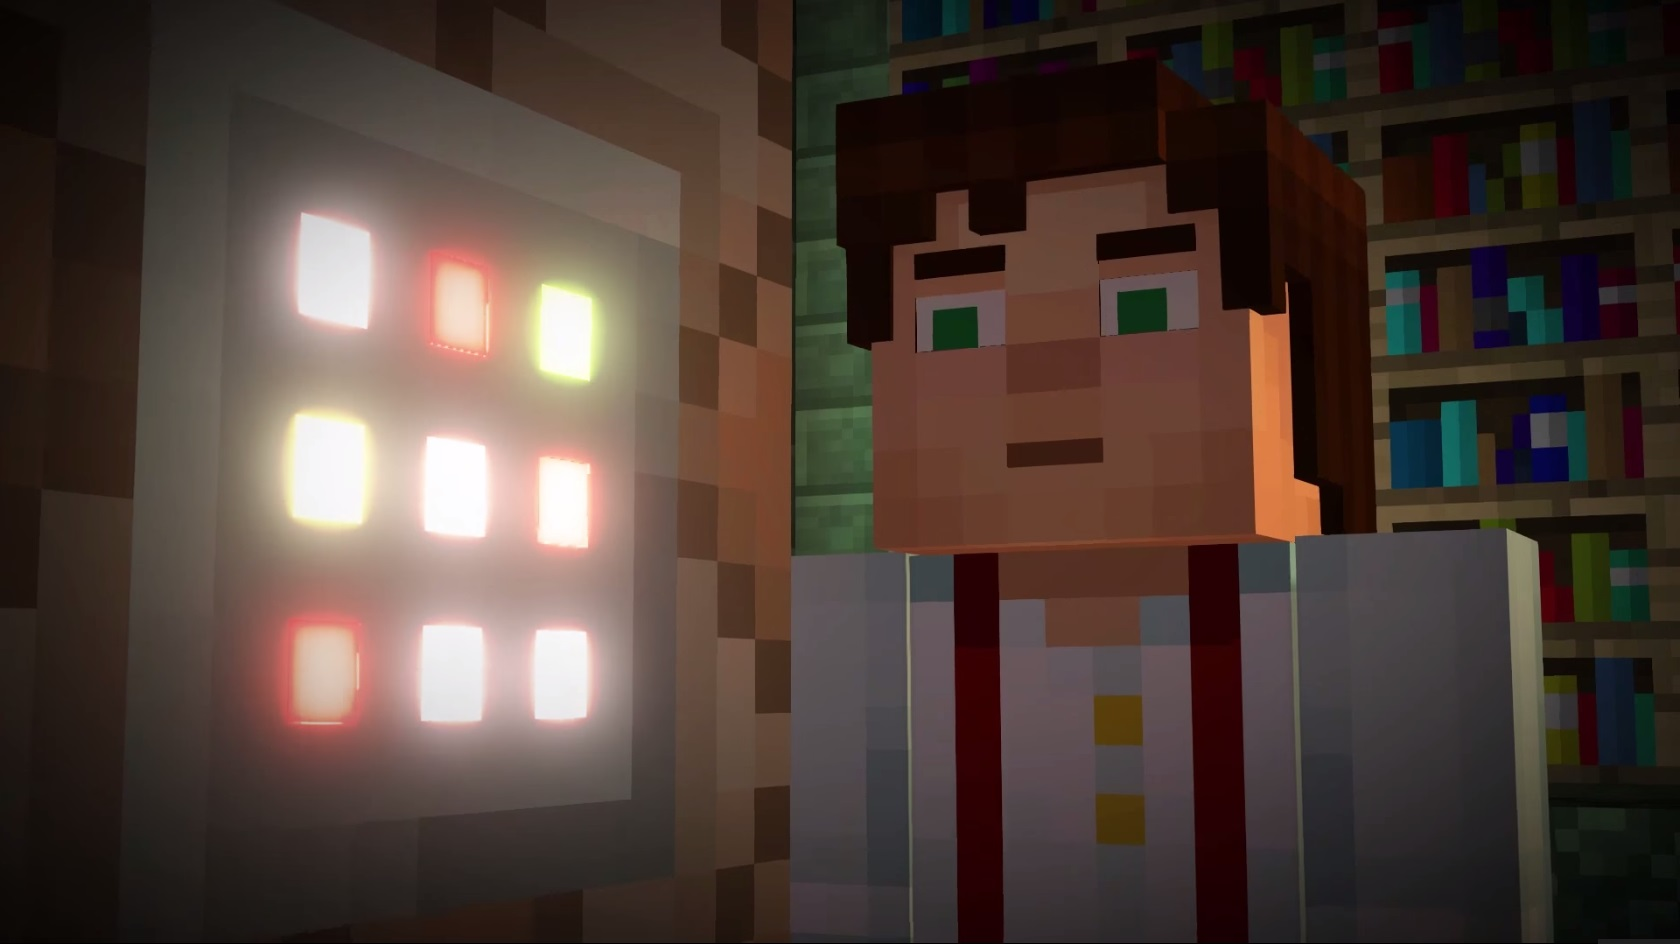 Minecraft story mode release date inadvertently outed by amazon - Minecraft story mode wallpaper ...